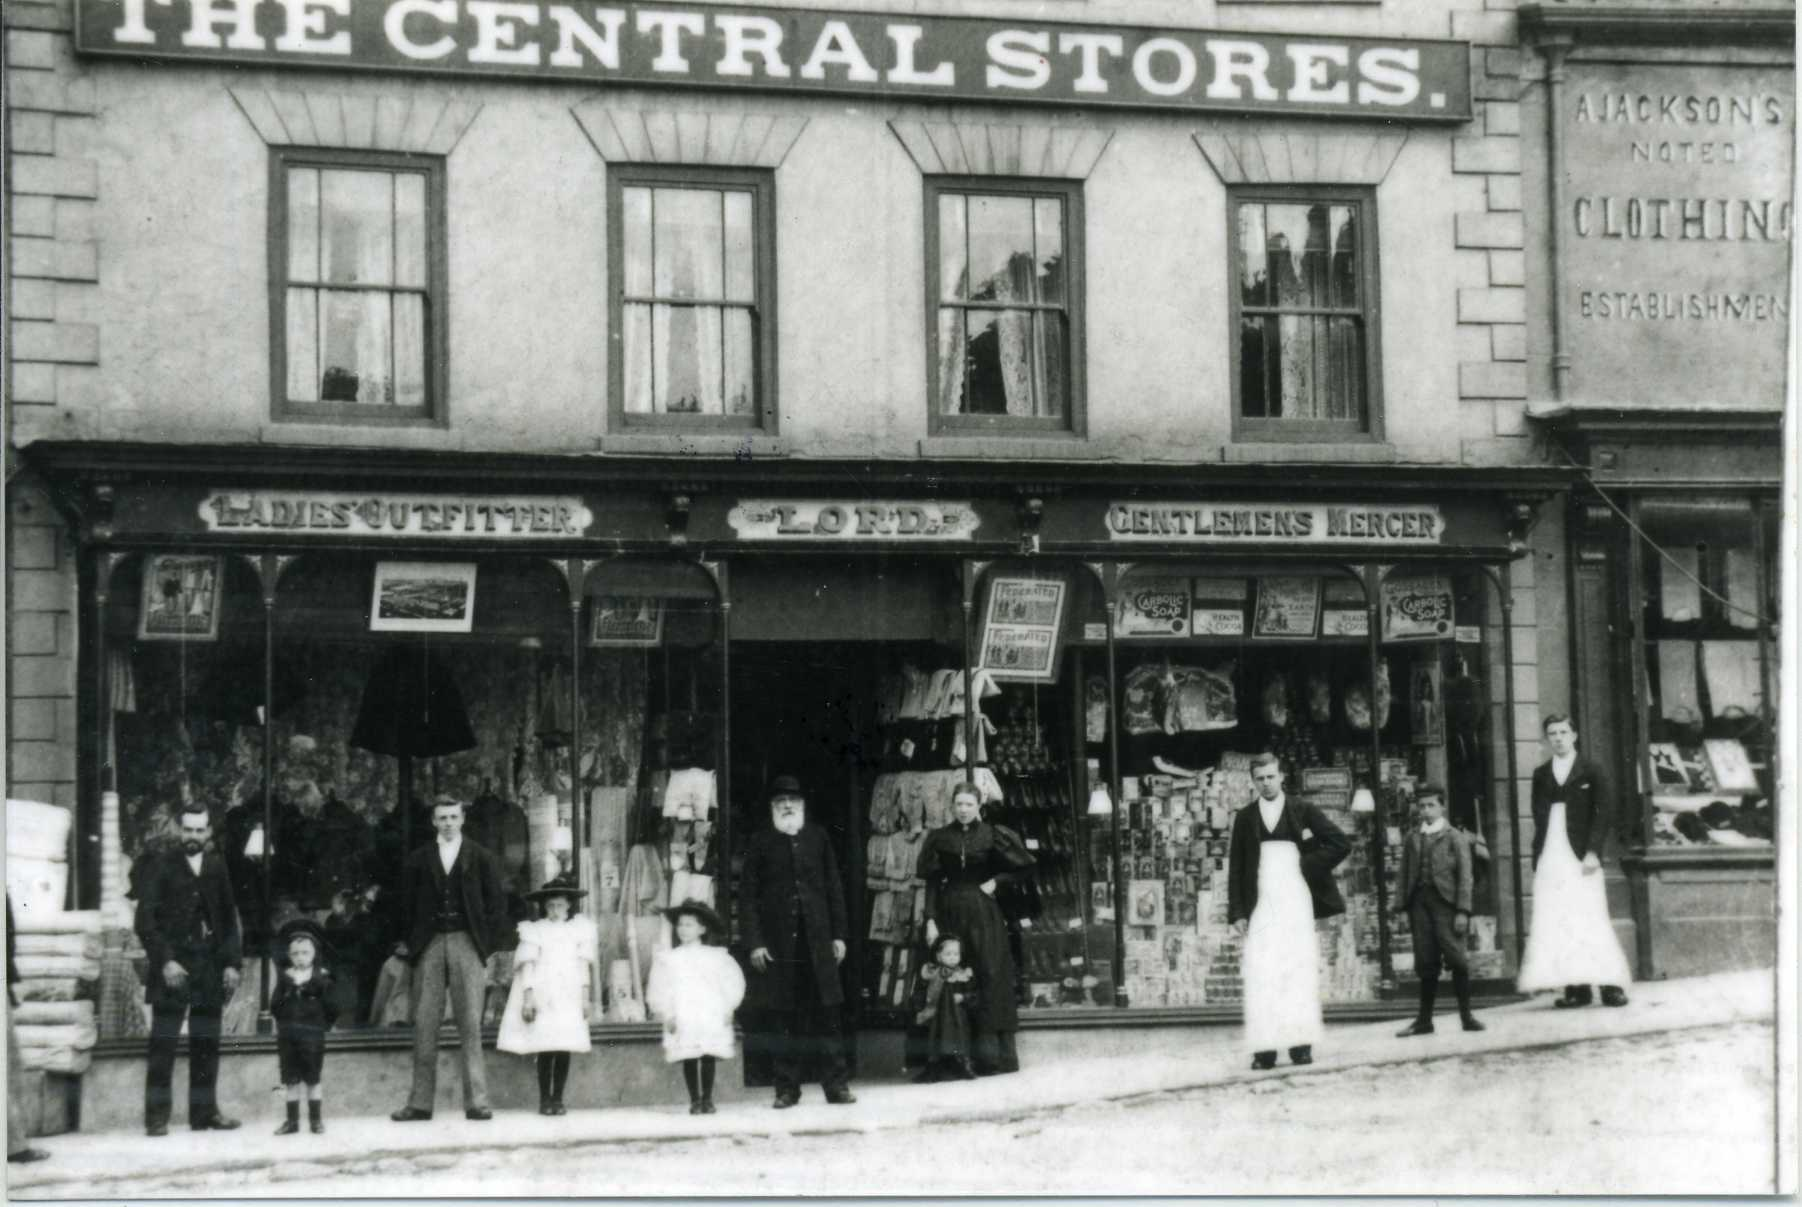 central stores338.jpg